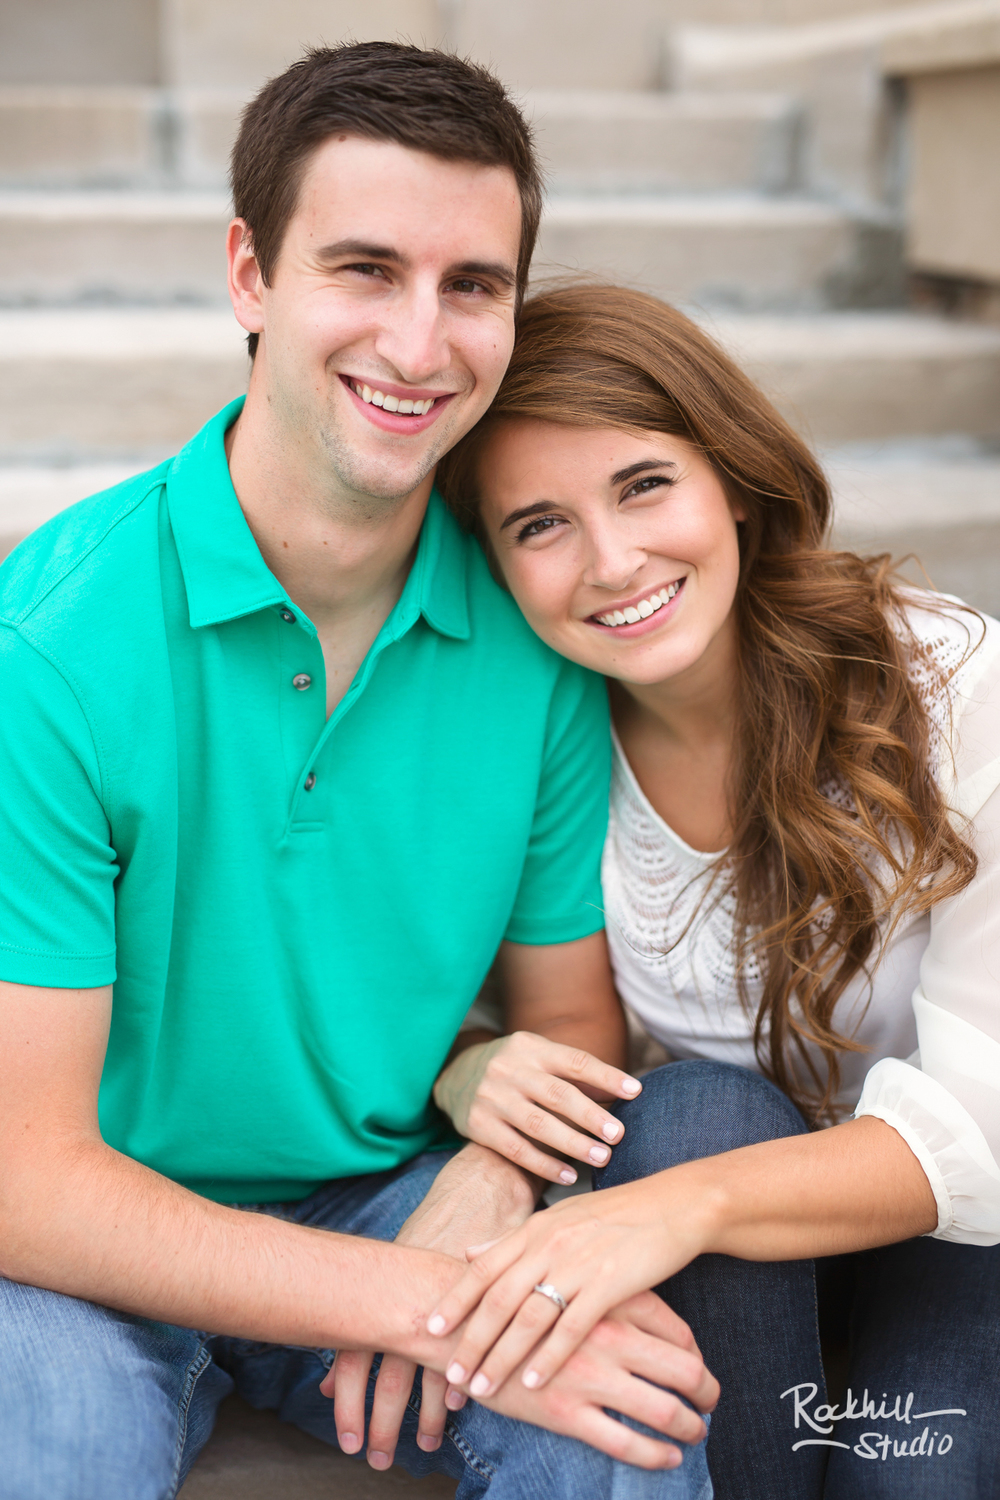 Rockhill-studio-marquette-michigan-upper-peninsula-engagement-session-library-8.jpg